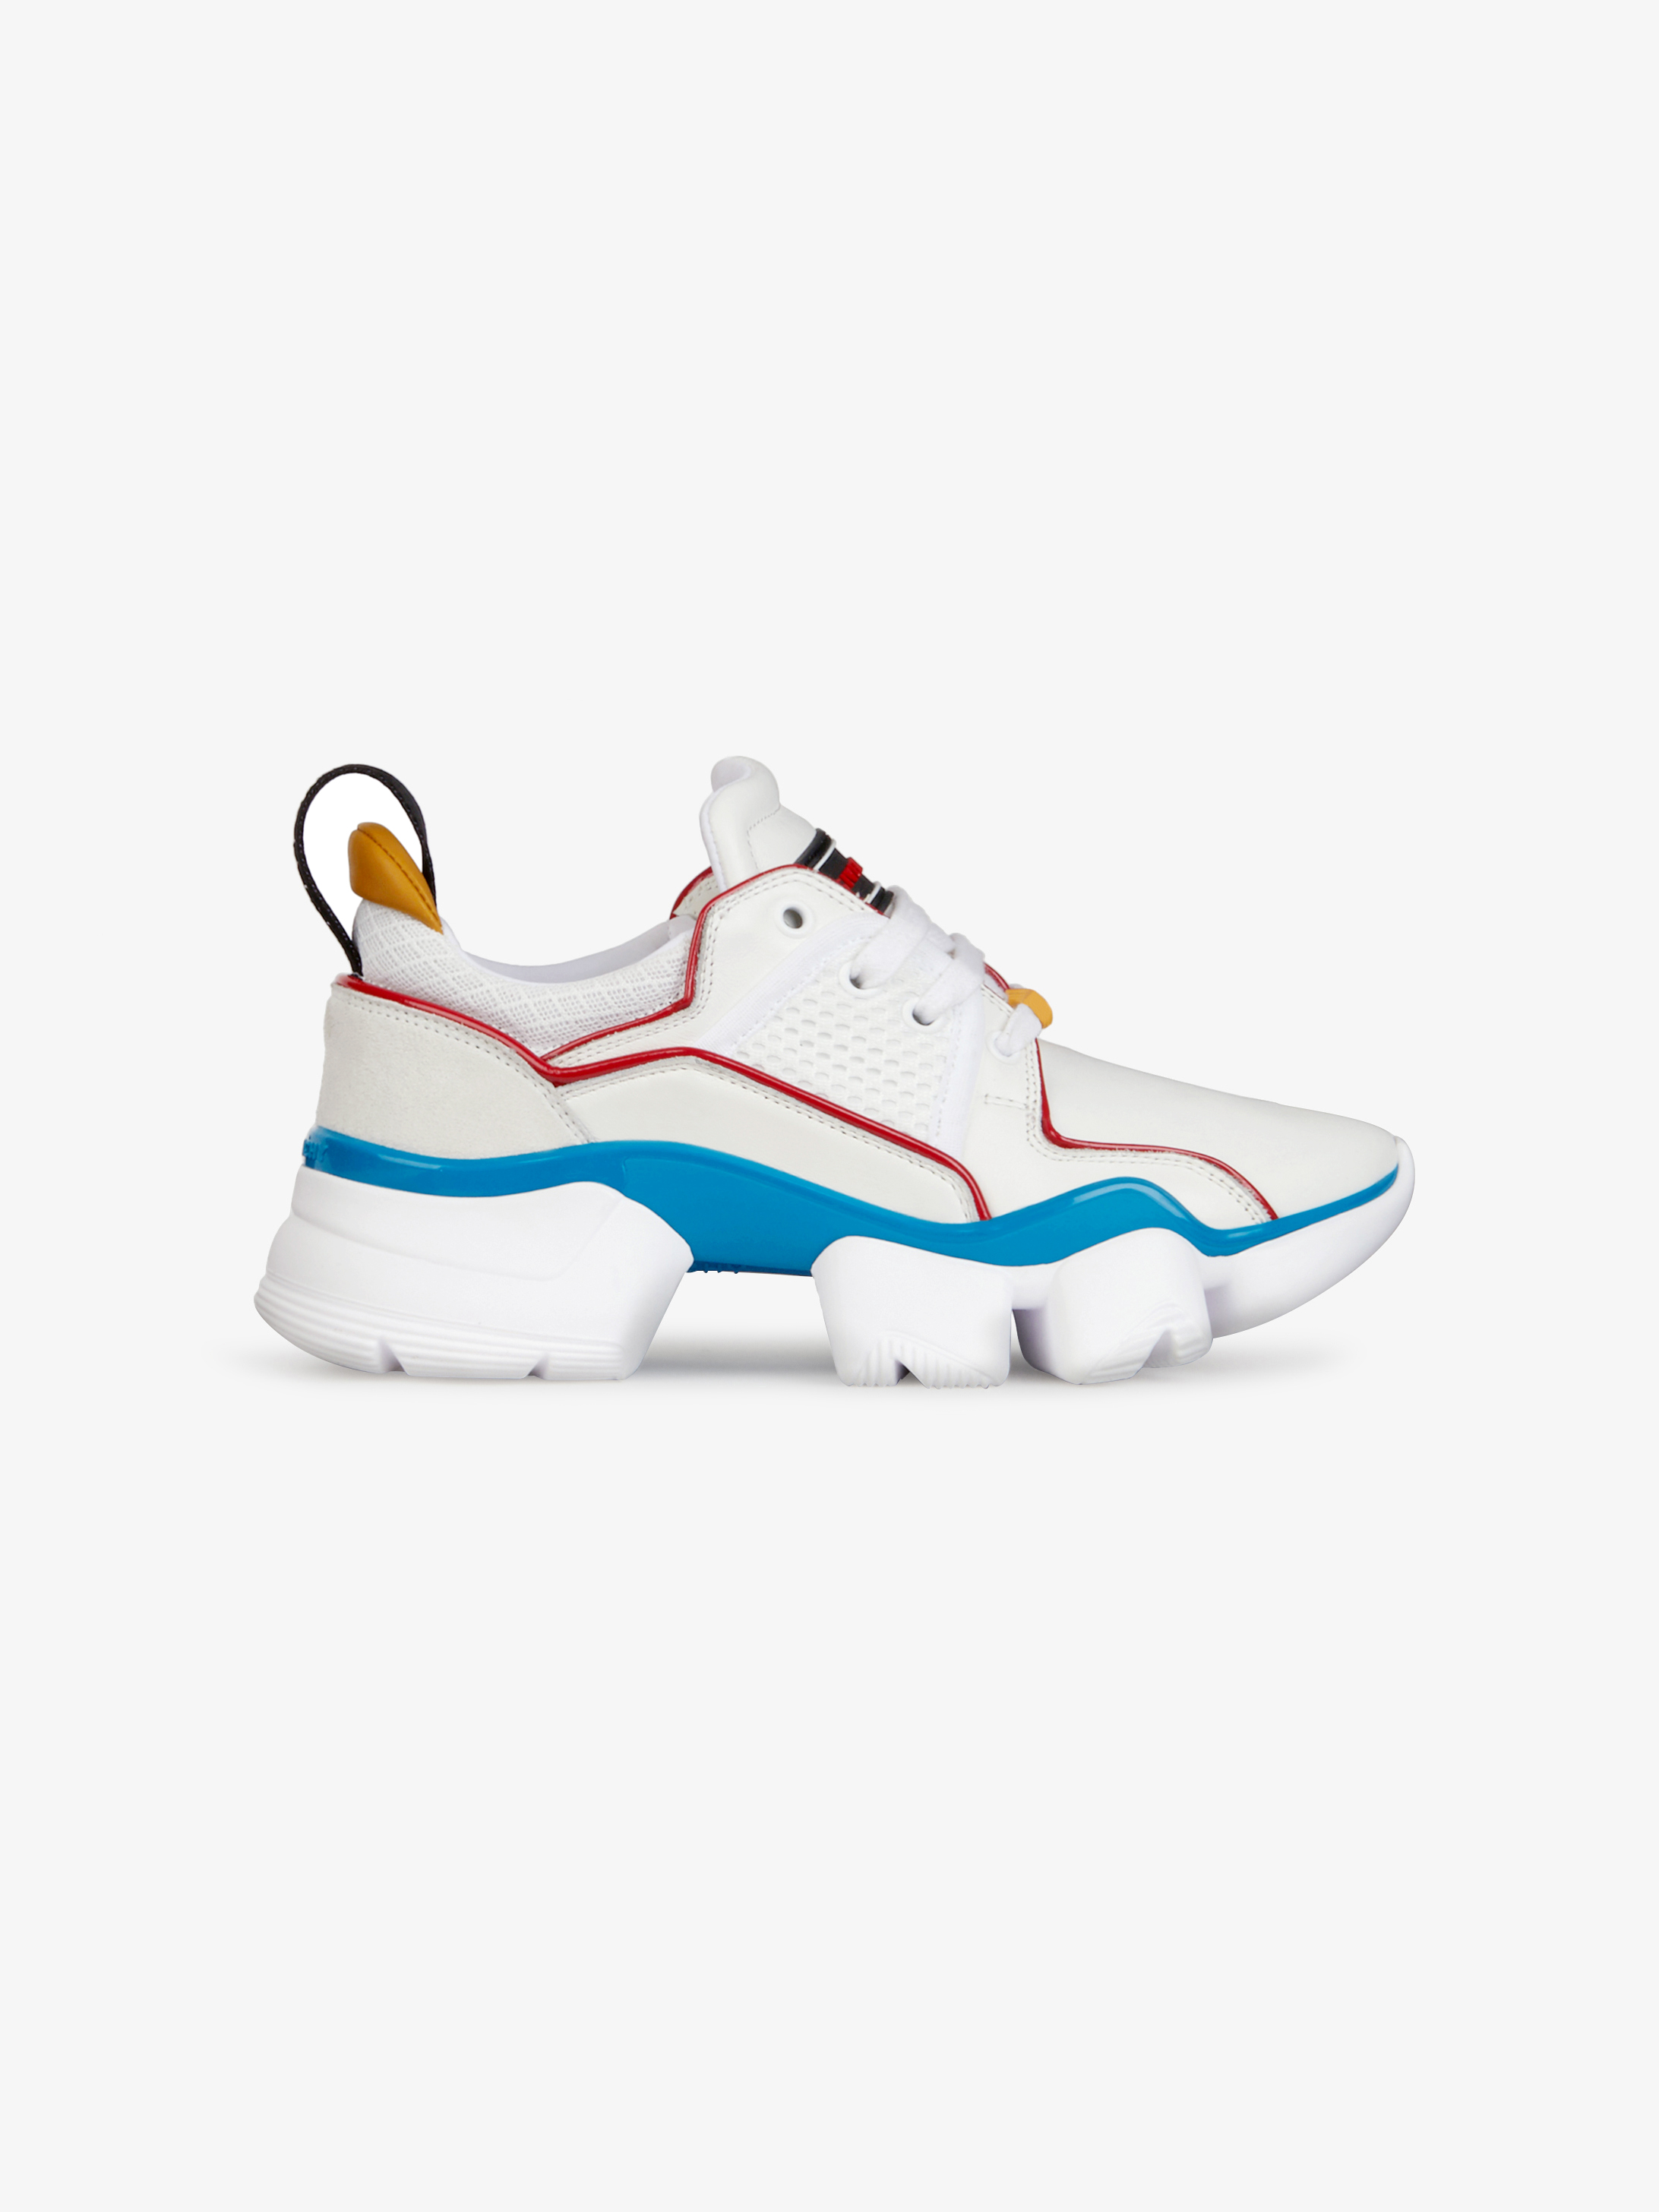 Multicolored low JAW sneakers in neoprene and leather